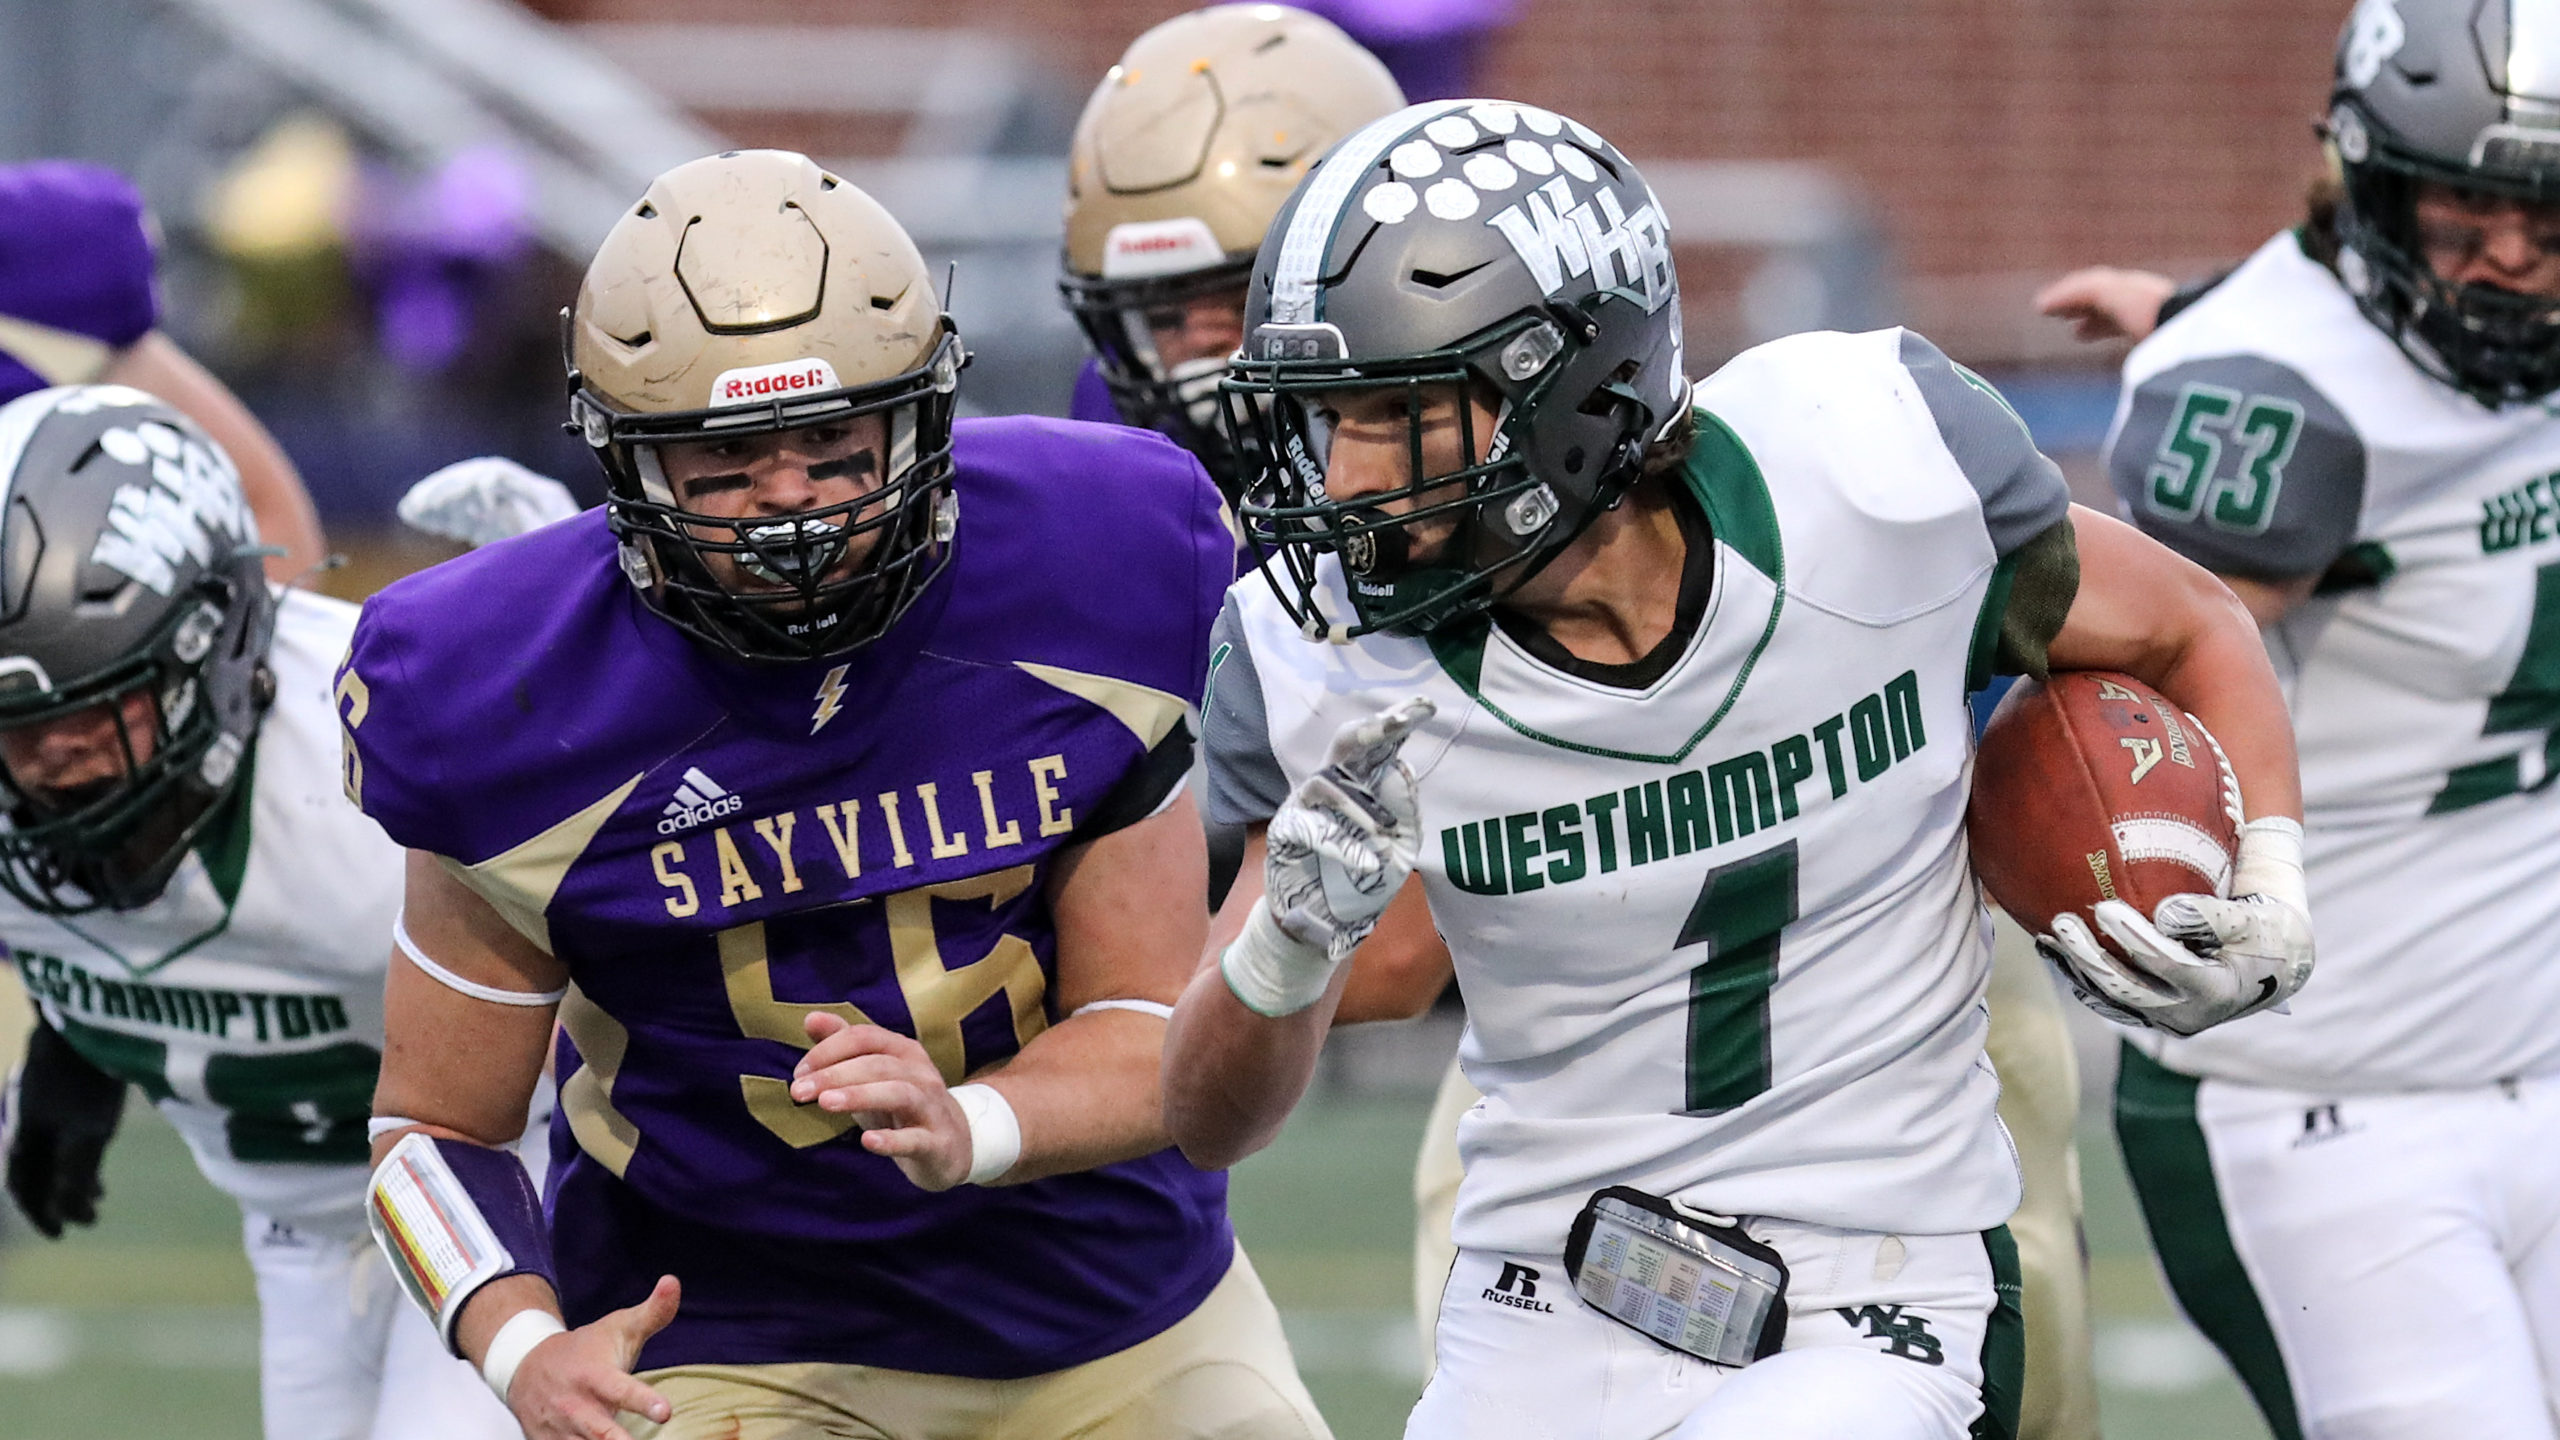 Westhampton Beach running back Deegan Laube finished with 37 yards on 13 carries and had an 81-yard touchdown reception.